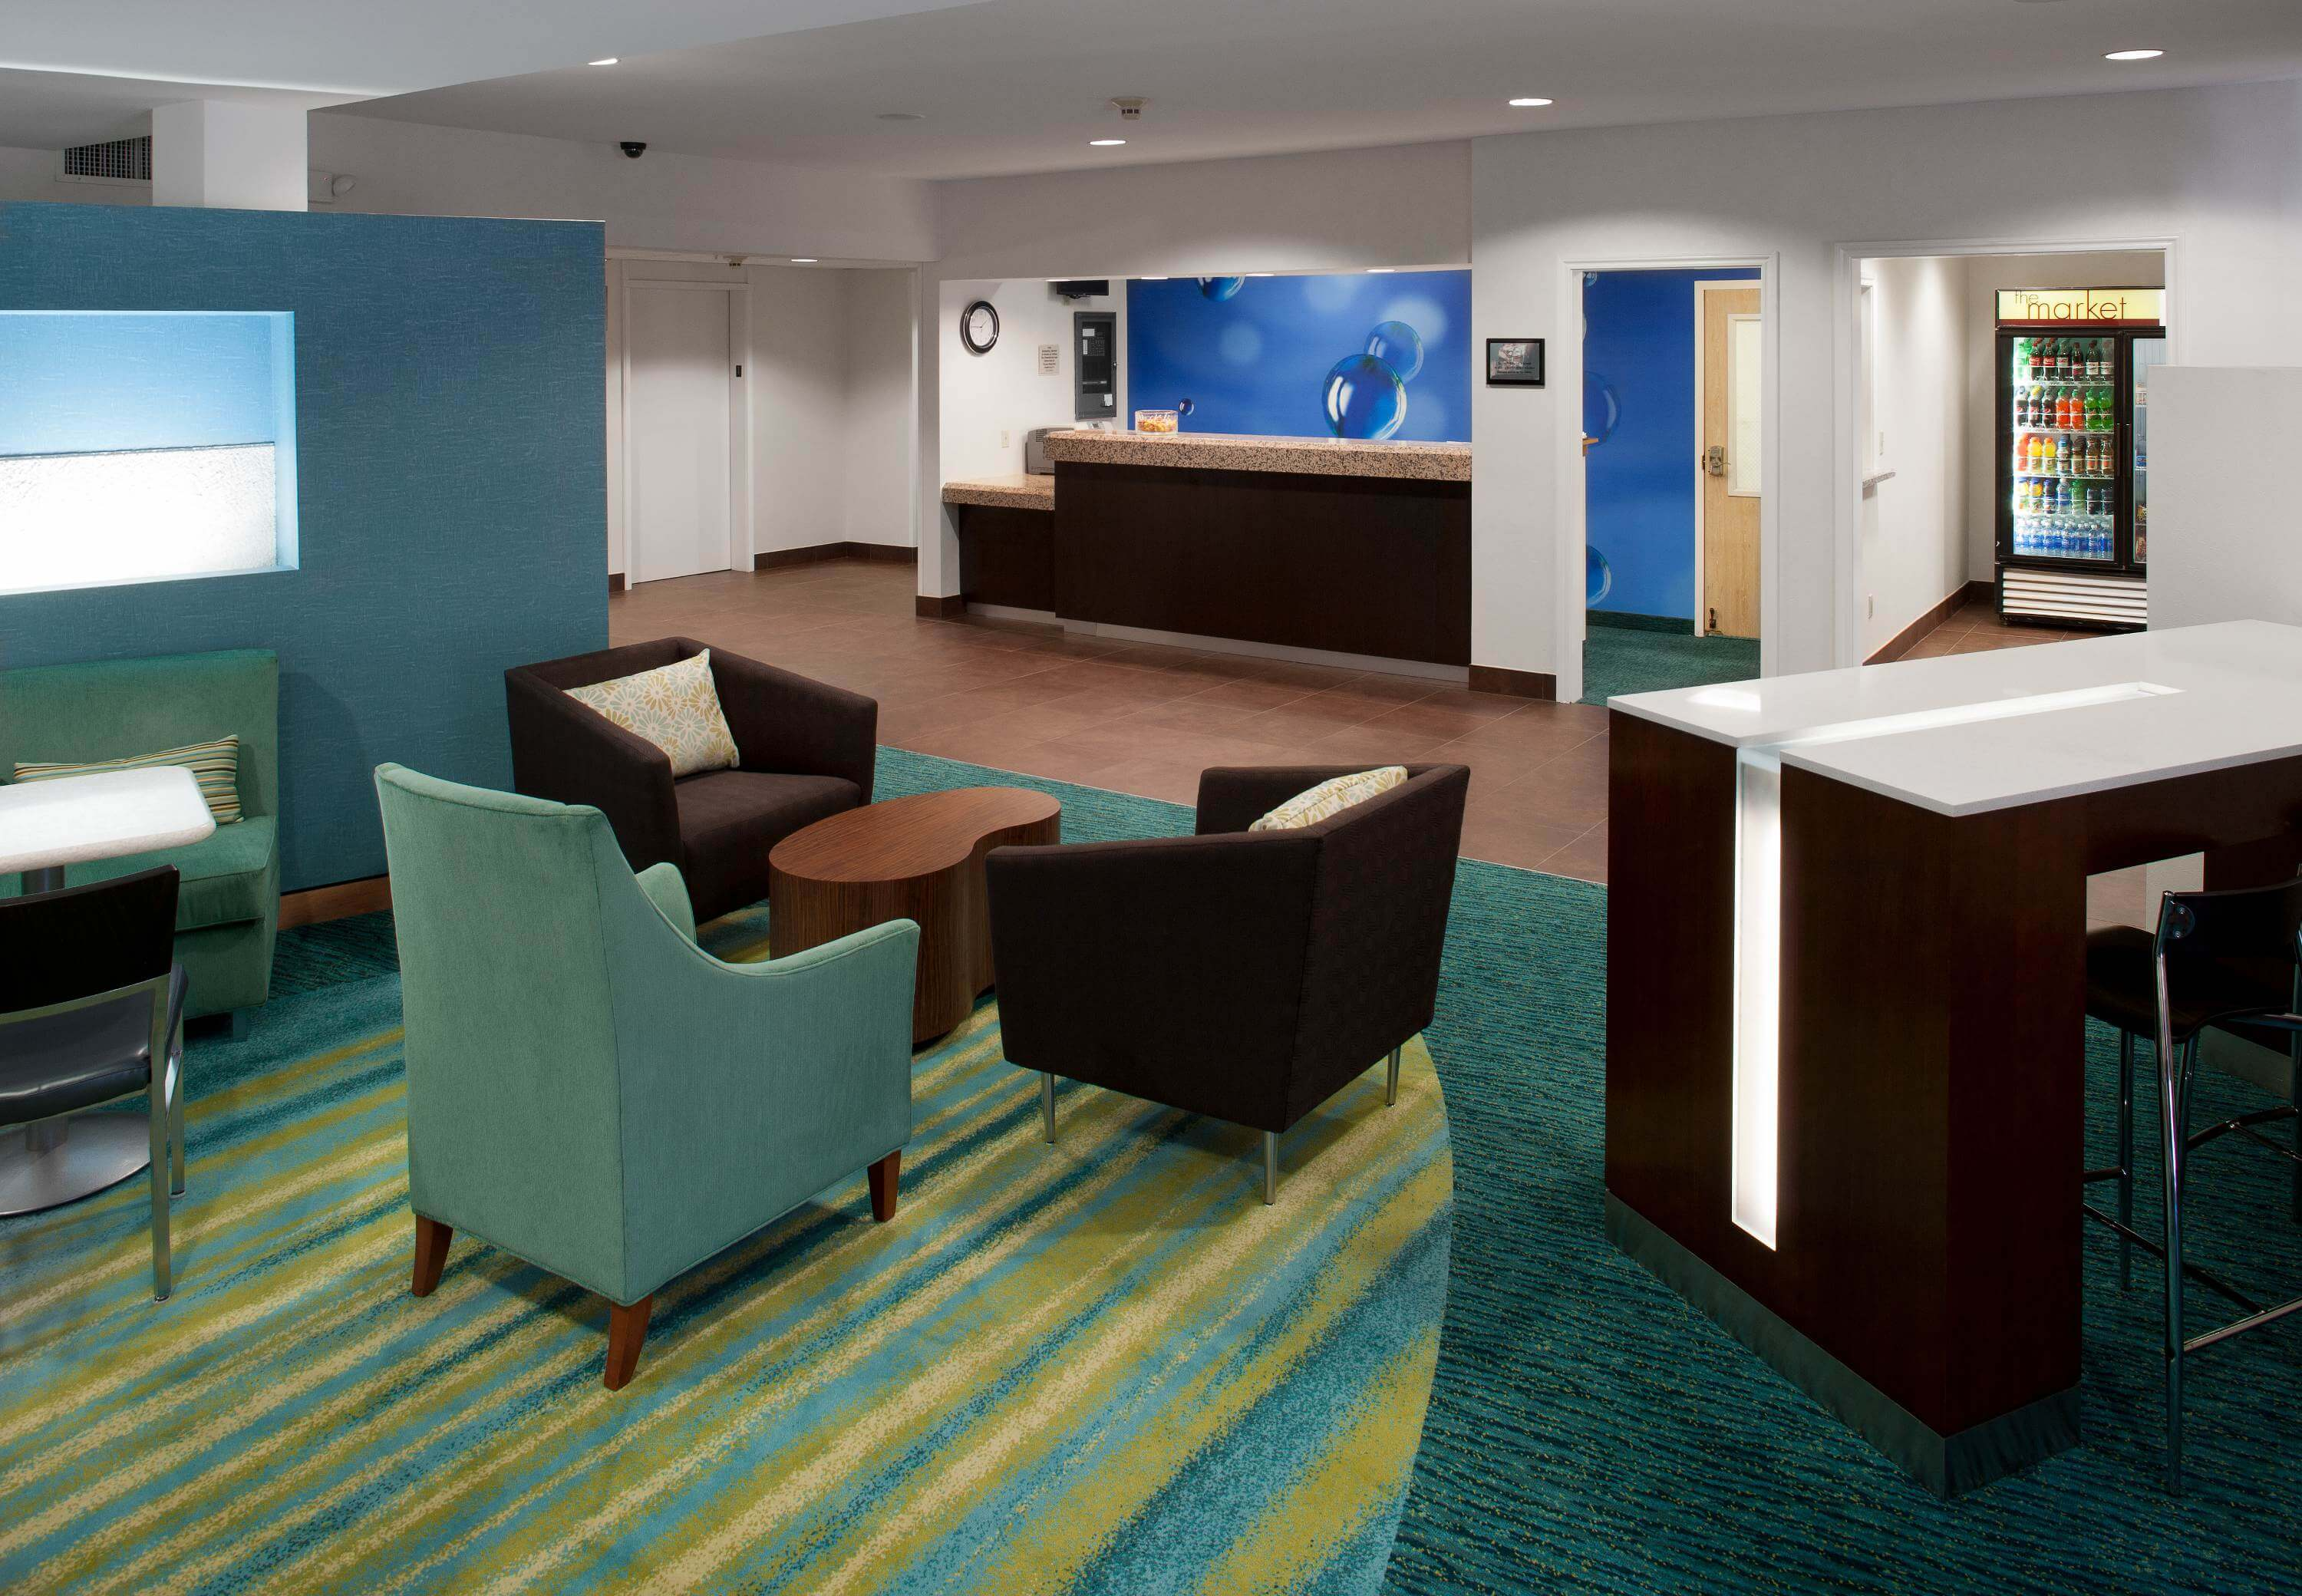 Springhill Suites by Marriott Dallas Arlington North - front desk